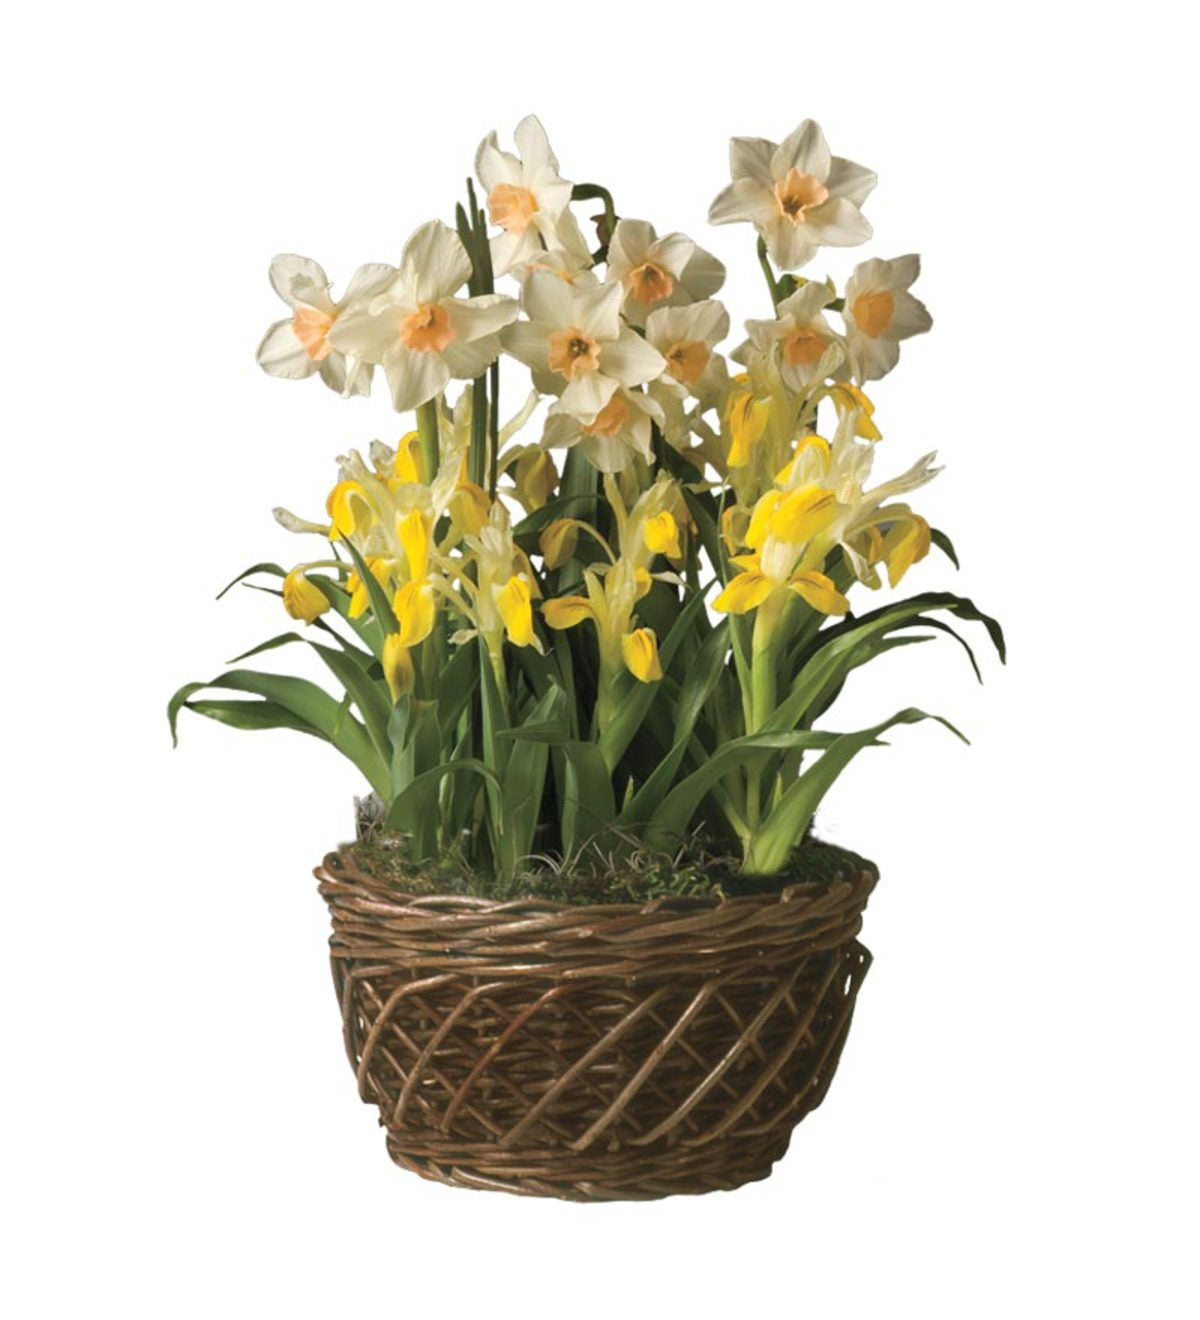 Hyacinth, Tulip And Narcissus Flower Bulb Garden - Ships March-May 2014